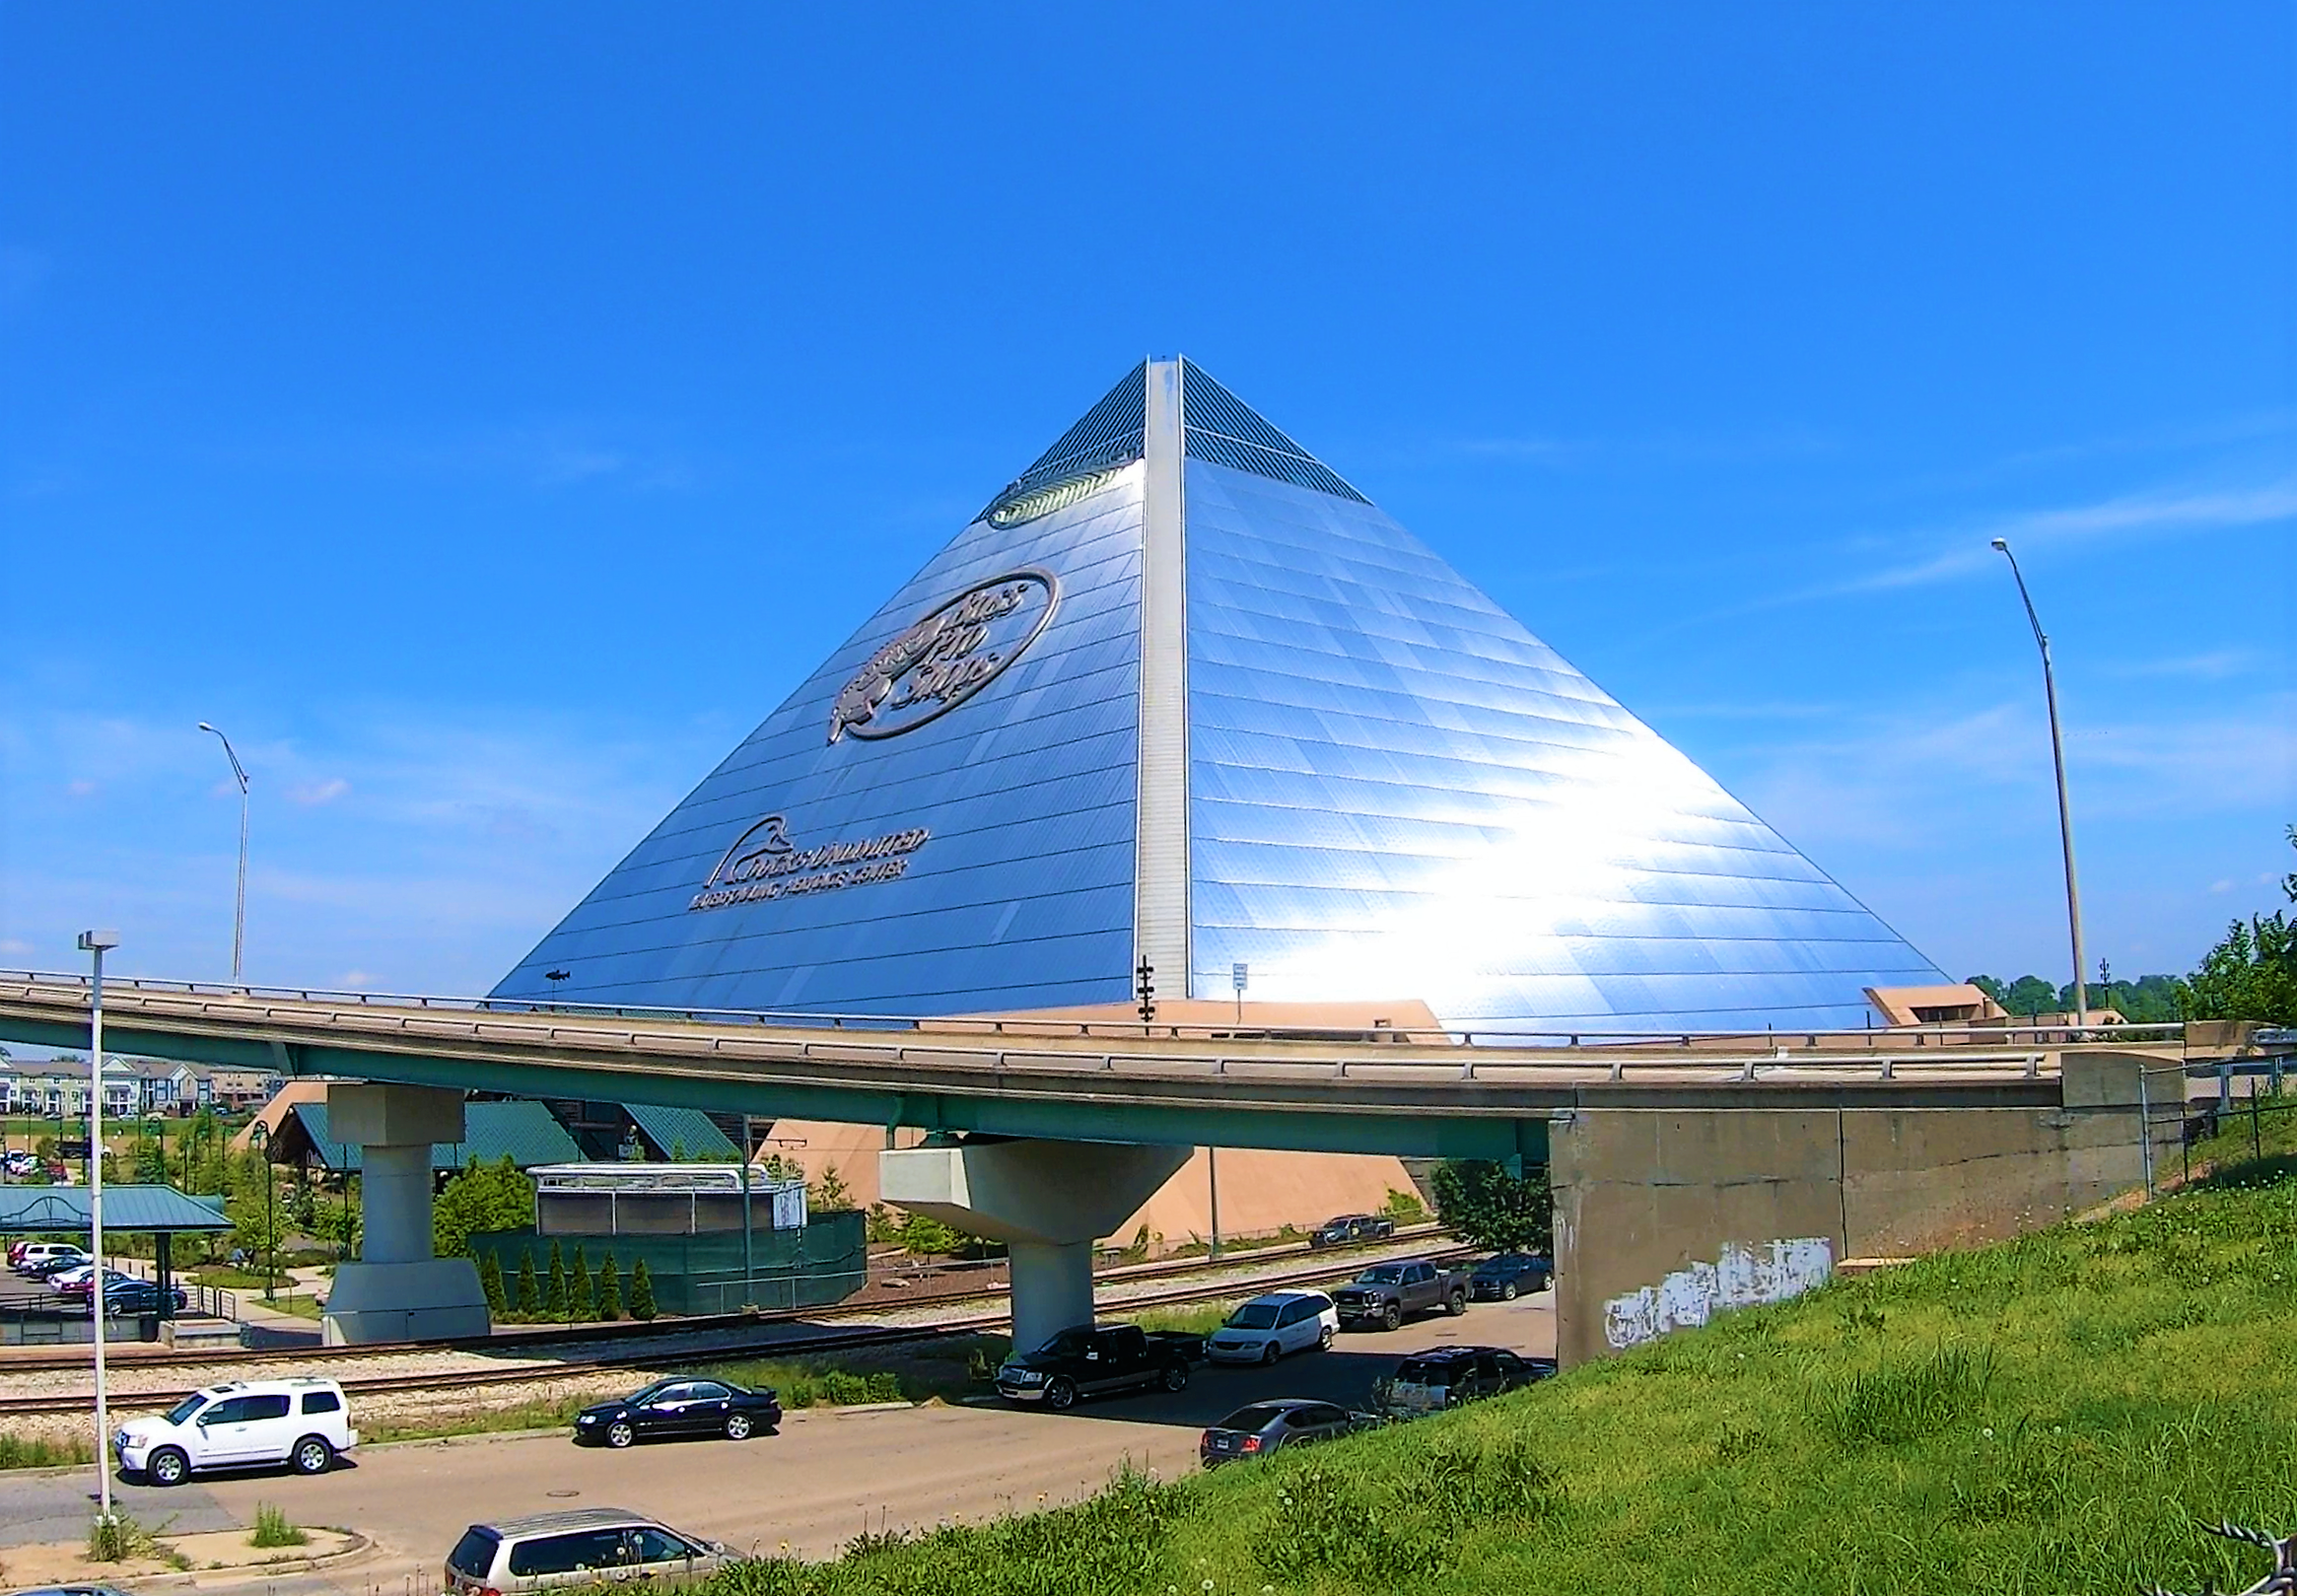 Bass Pro Shops Pyramid in Memphis, Tennessee